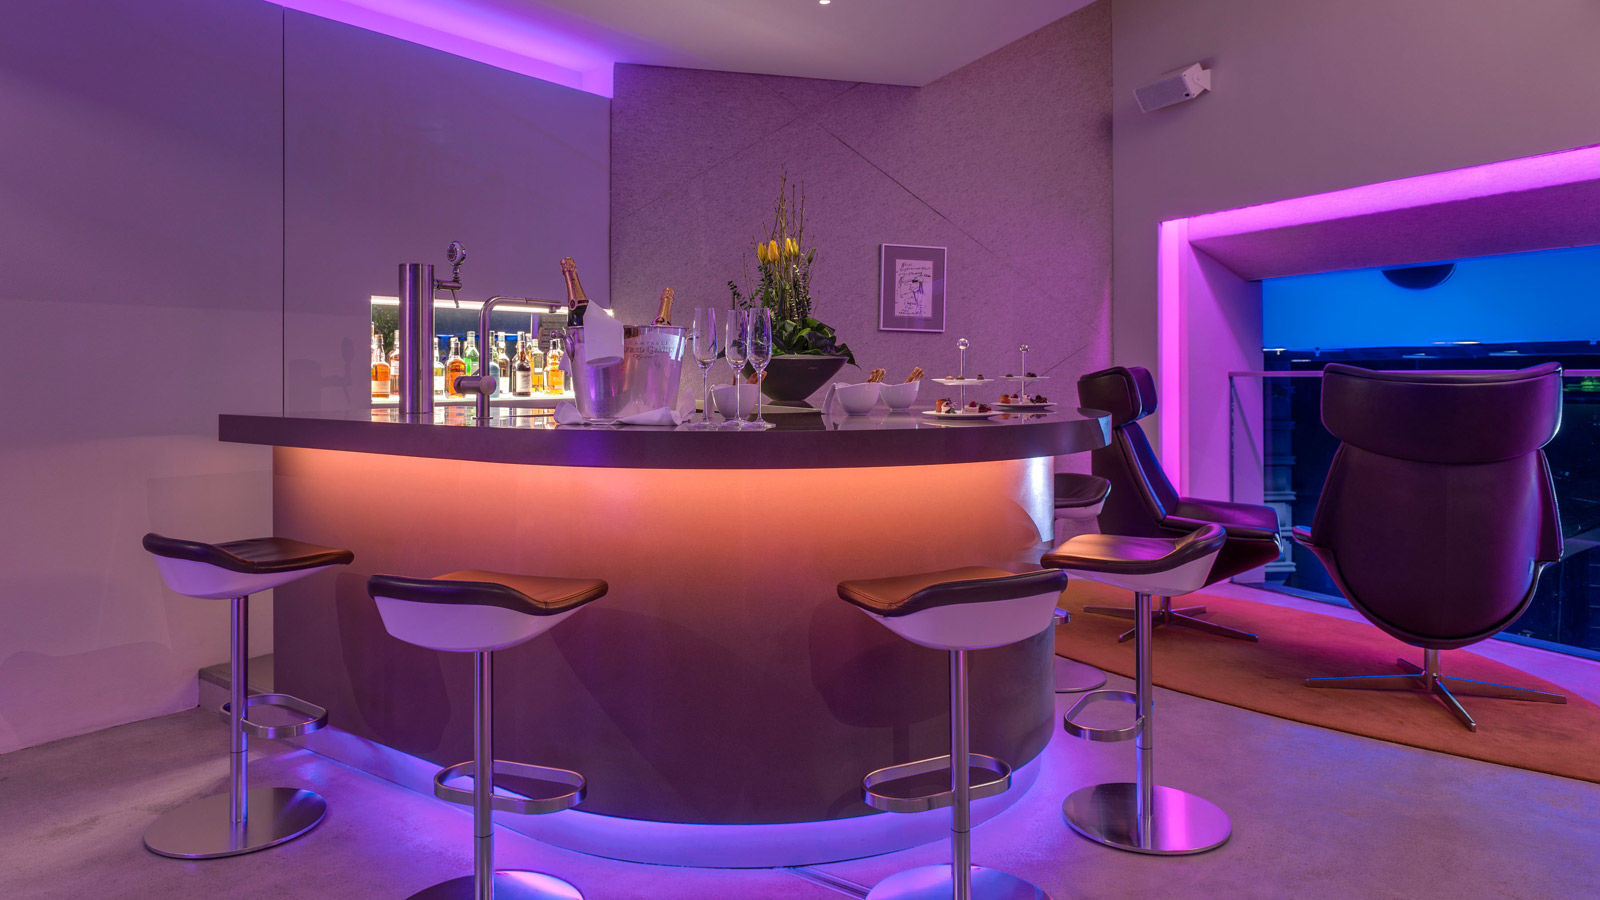 City Tipp des The Westin Grand Hotel Berlin - Wall Sky Lounge im Friedrichstadt-Palast